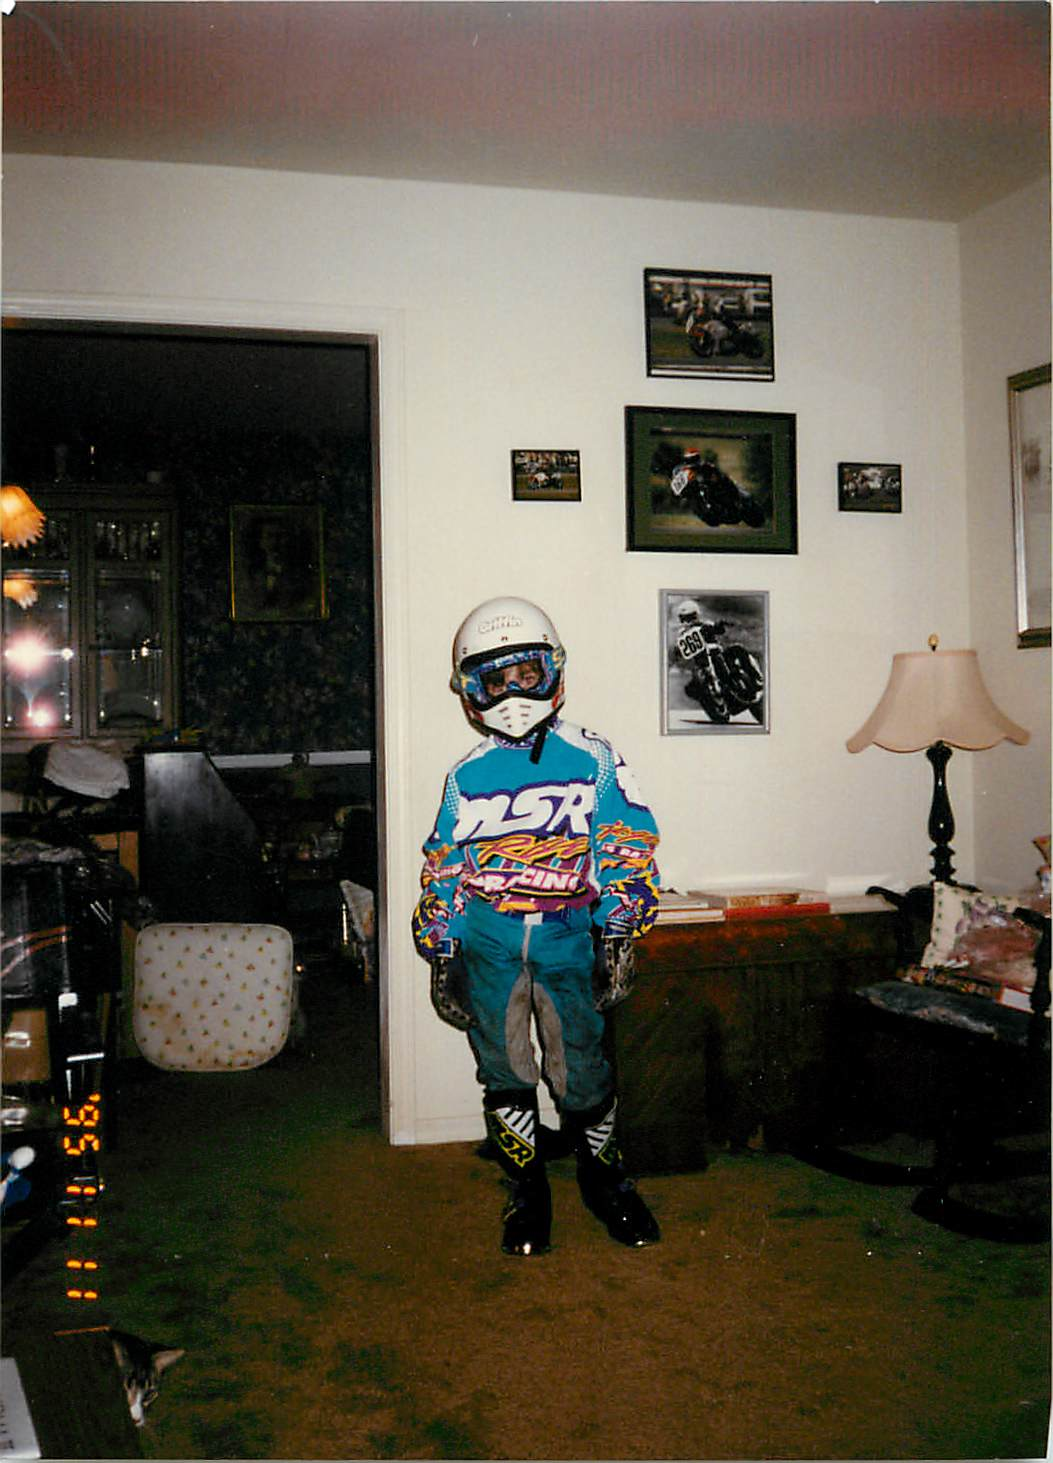 Dane 1995 in leathers